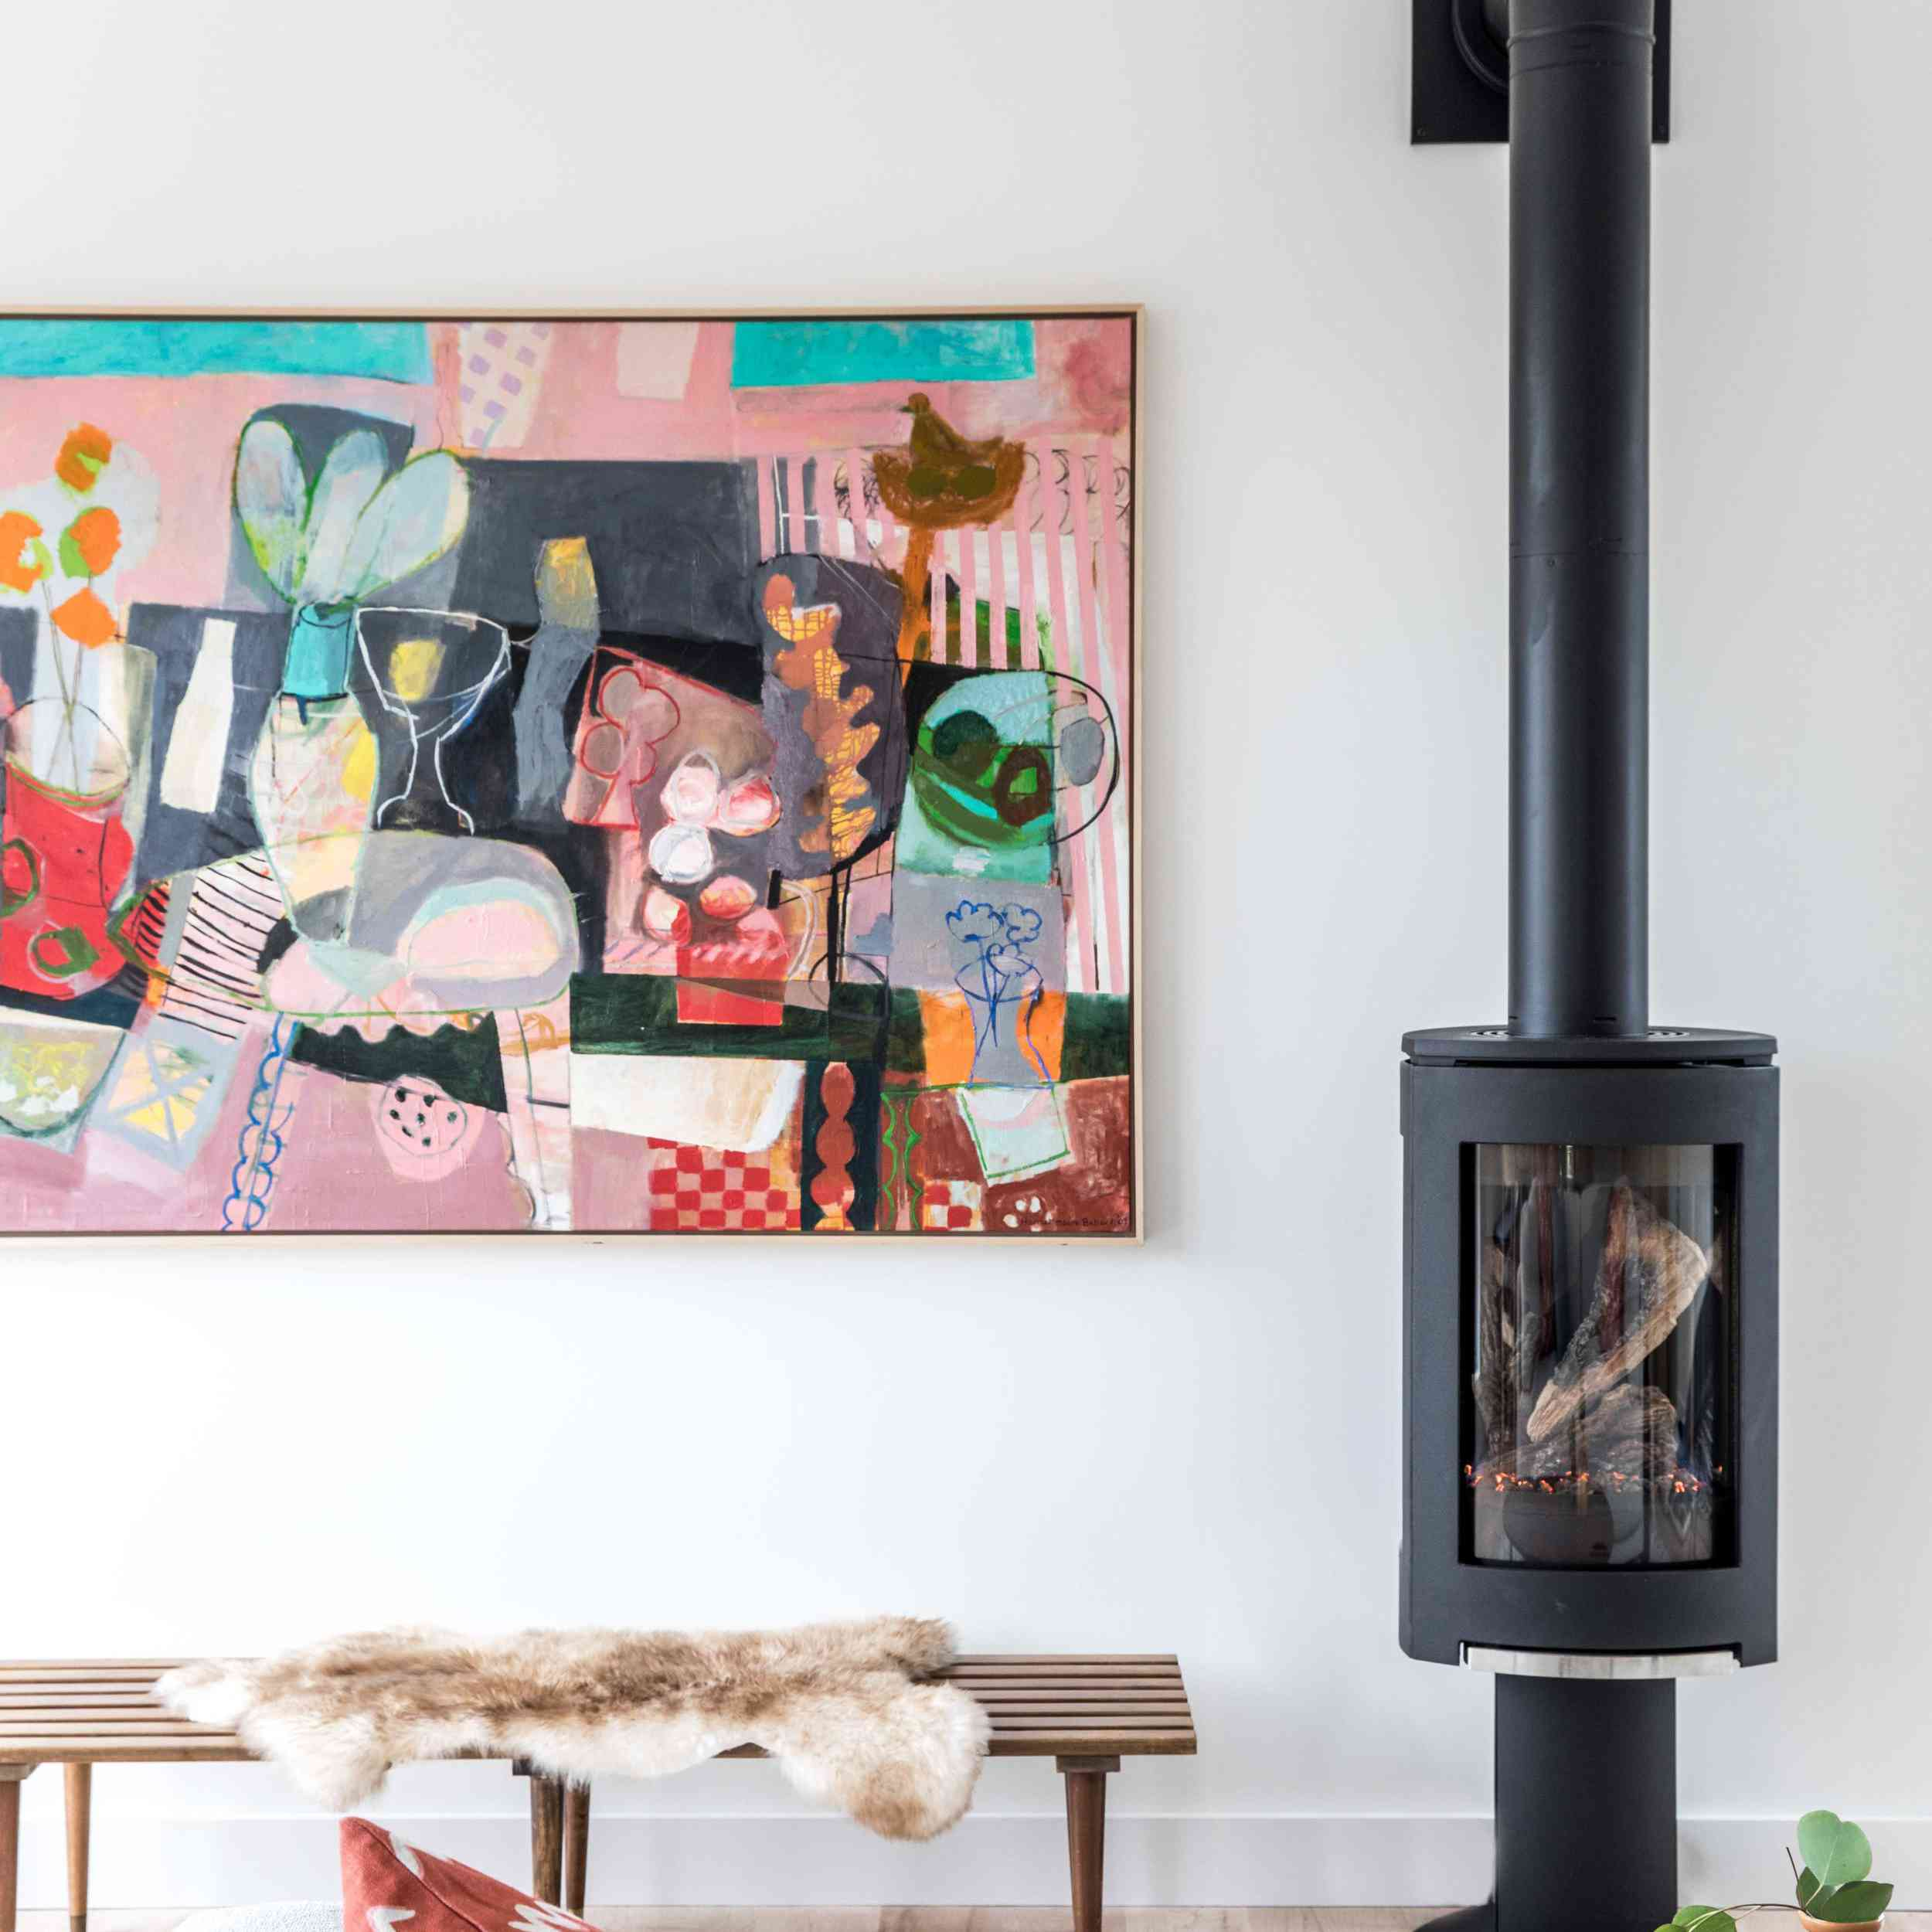 Mid-Century Modern styled living room with modern wood stove